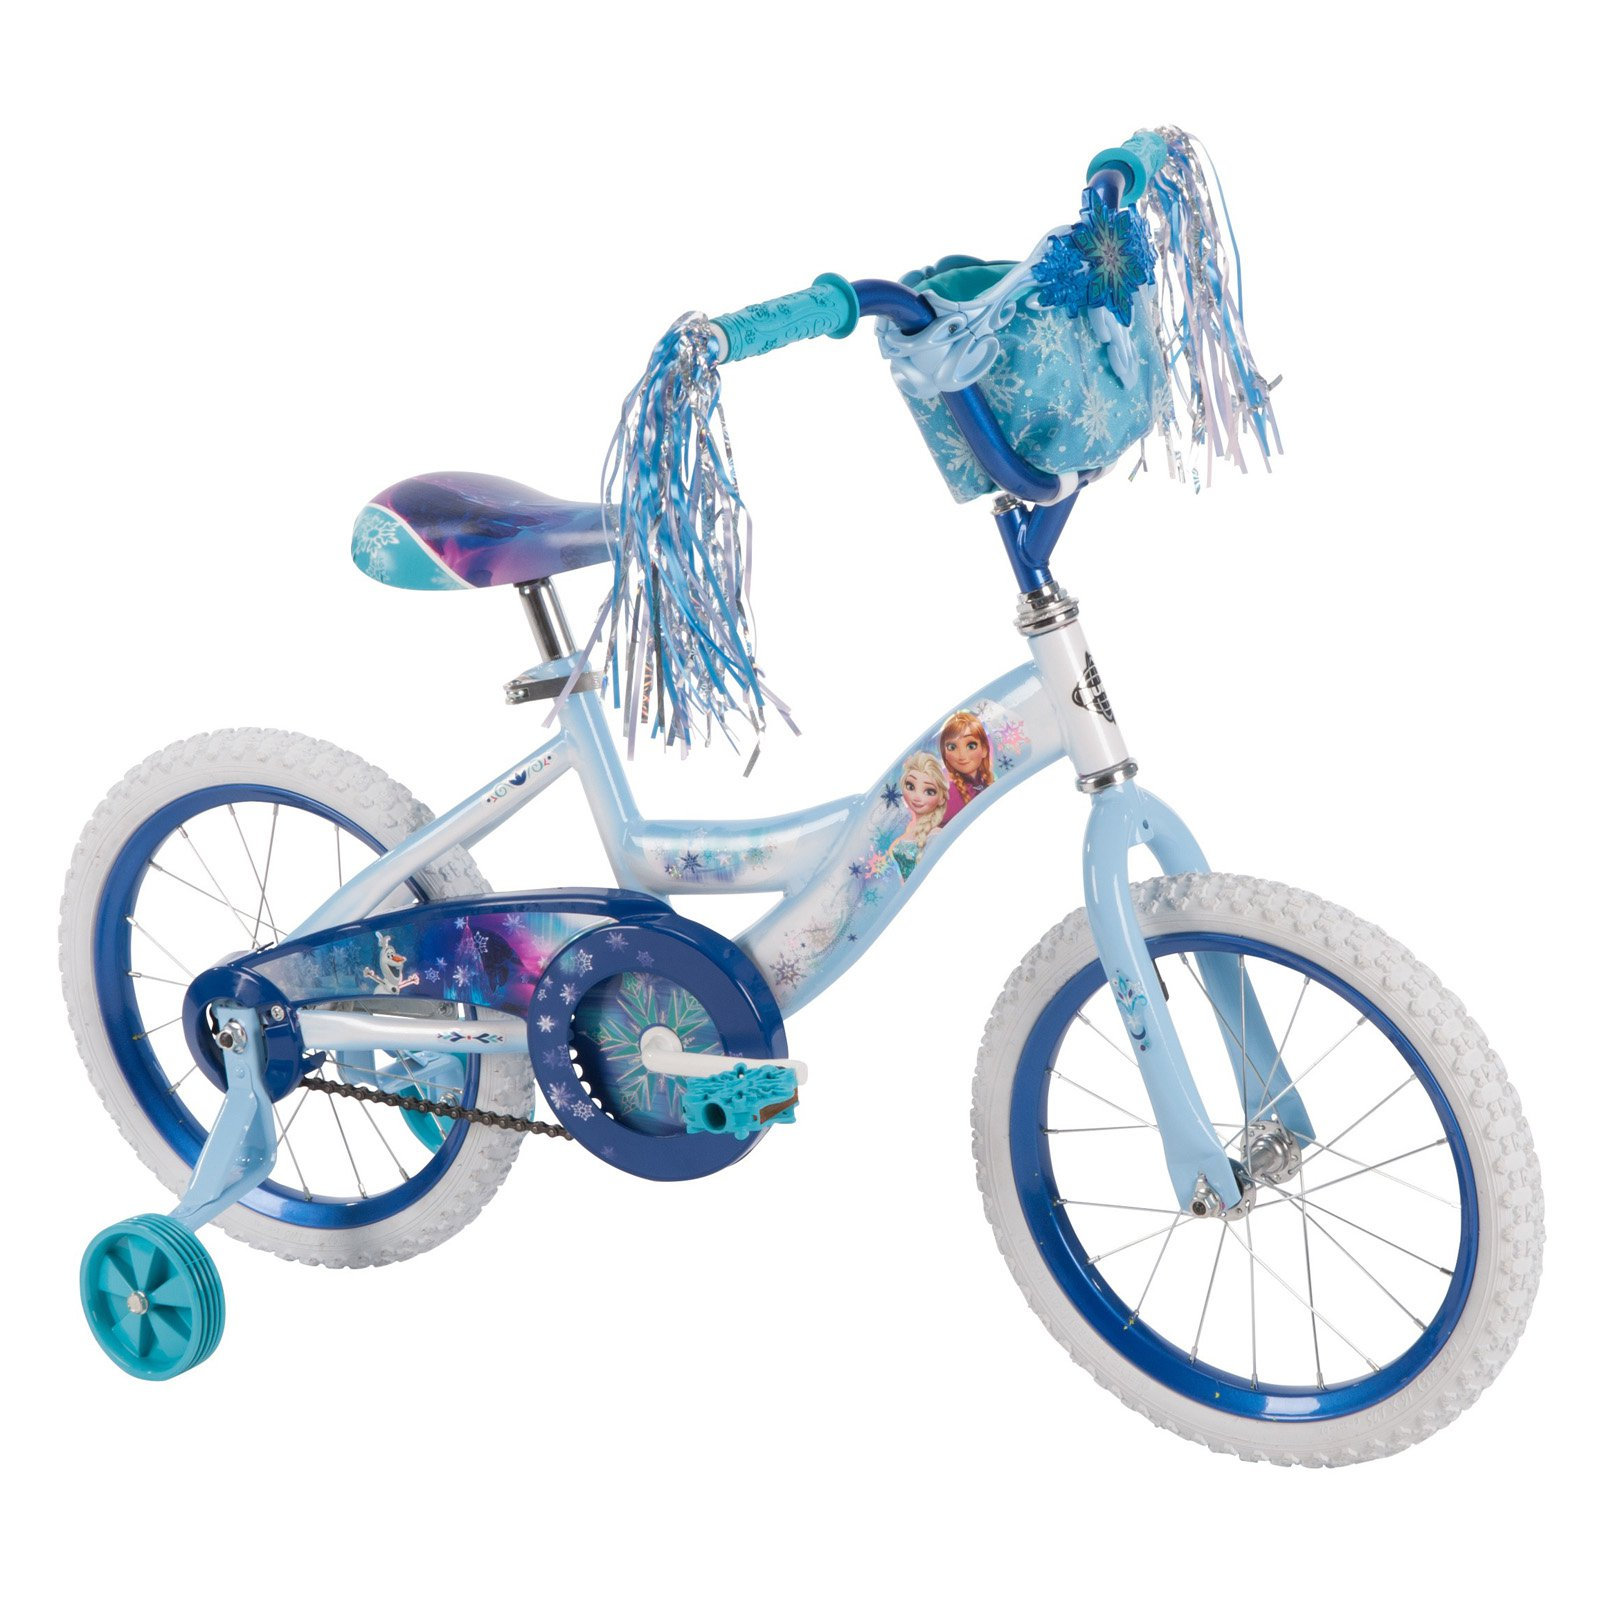 Huffy 16 in. Disney Frozen Bike with Handlebar Bag by Huffy Bicycles